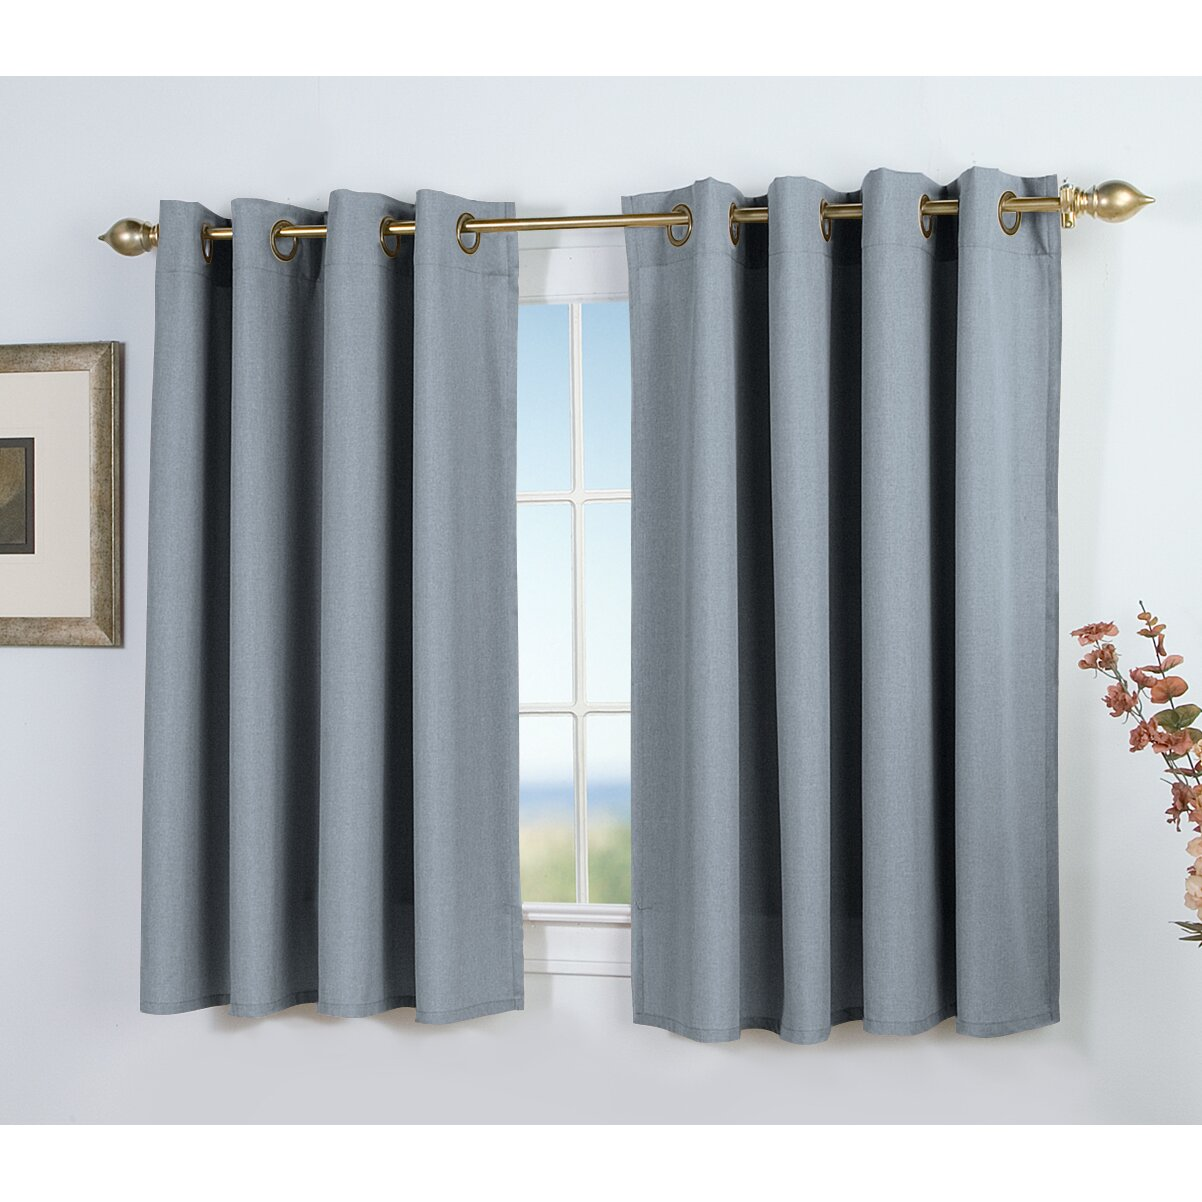 Ricardo Trading Glasgow Short Single Curtain Panel